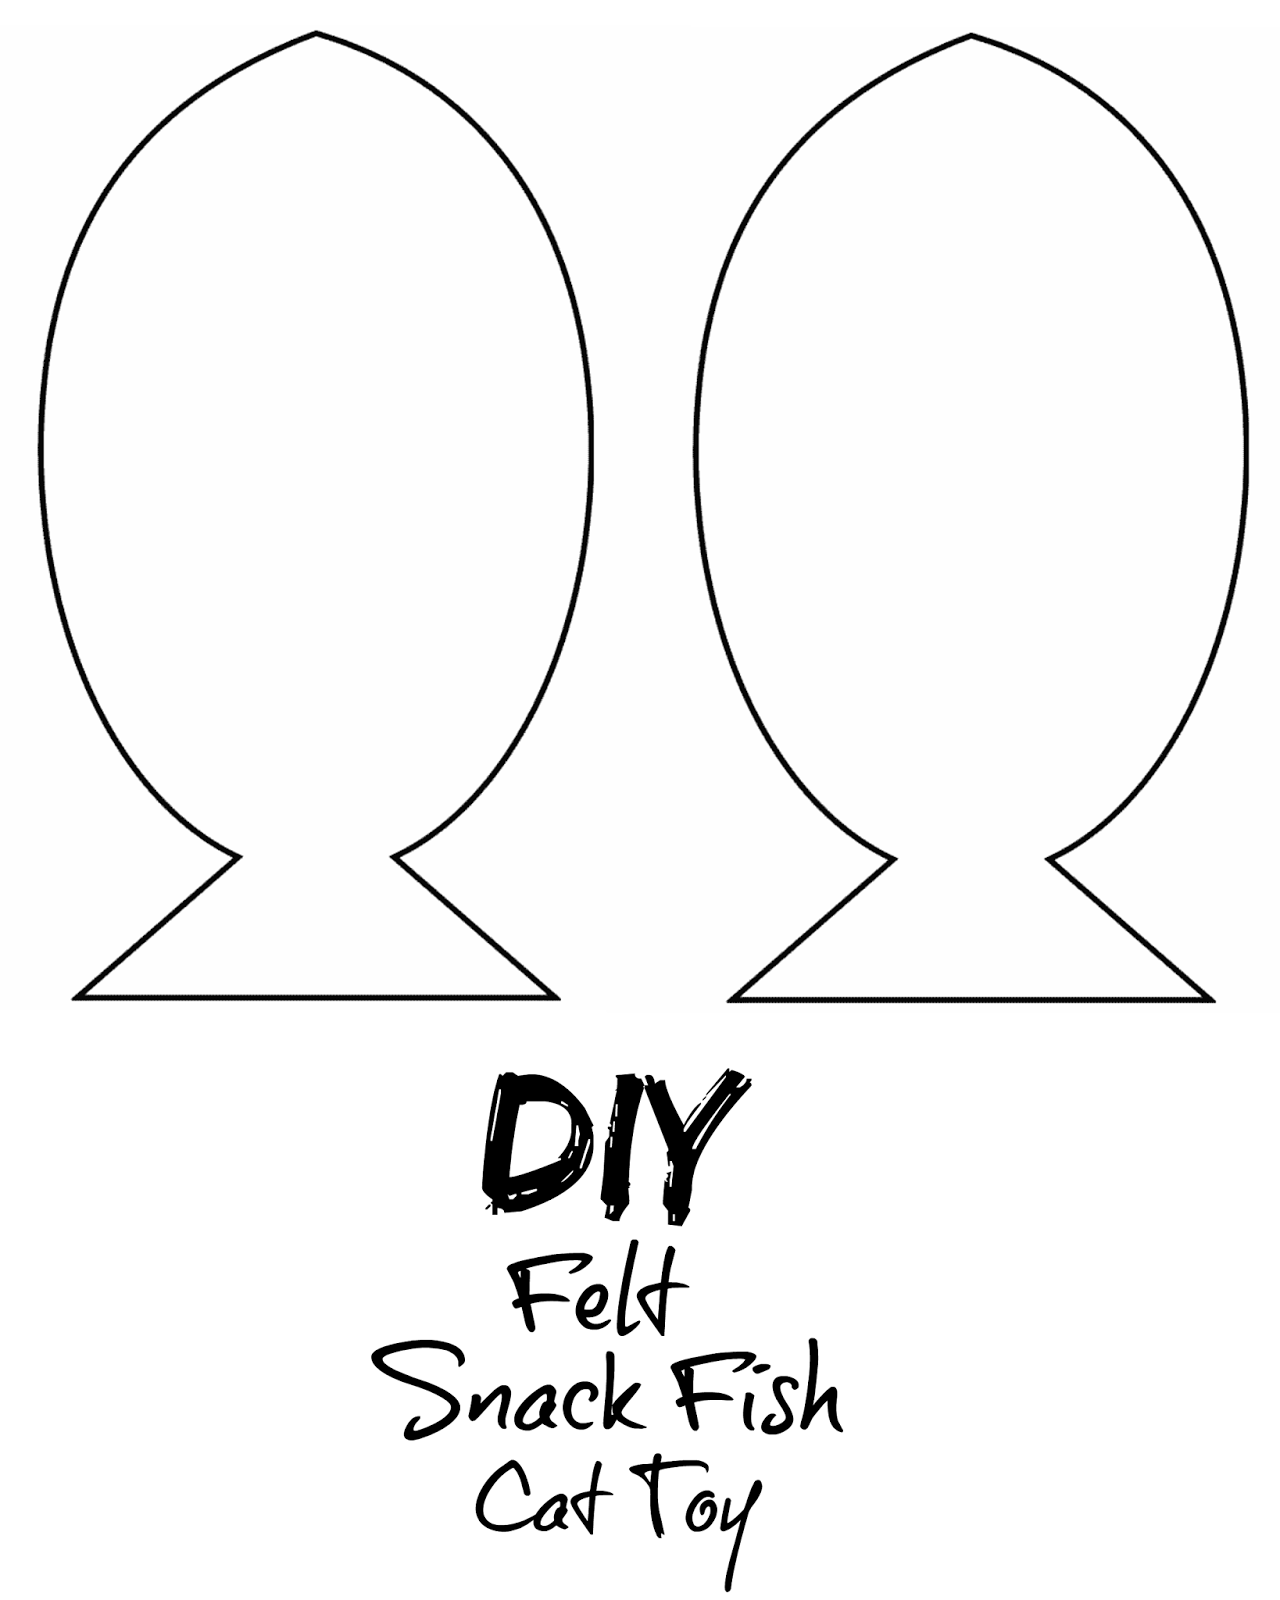 diy cat toy template